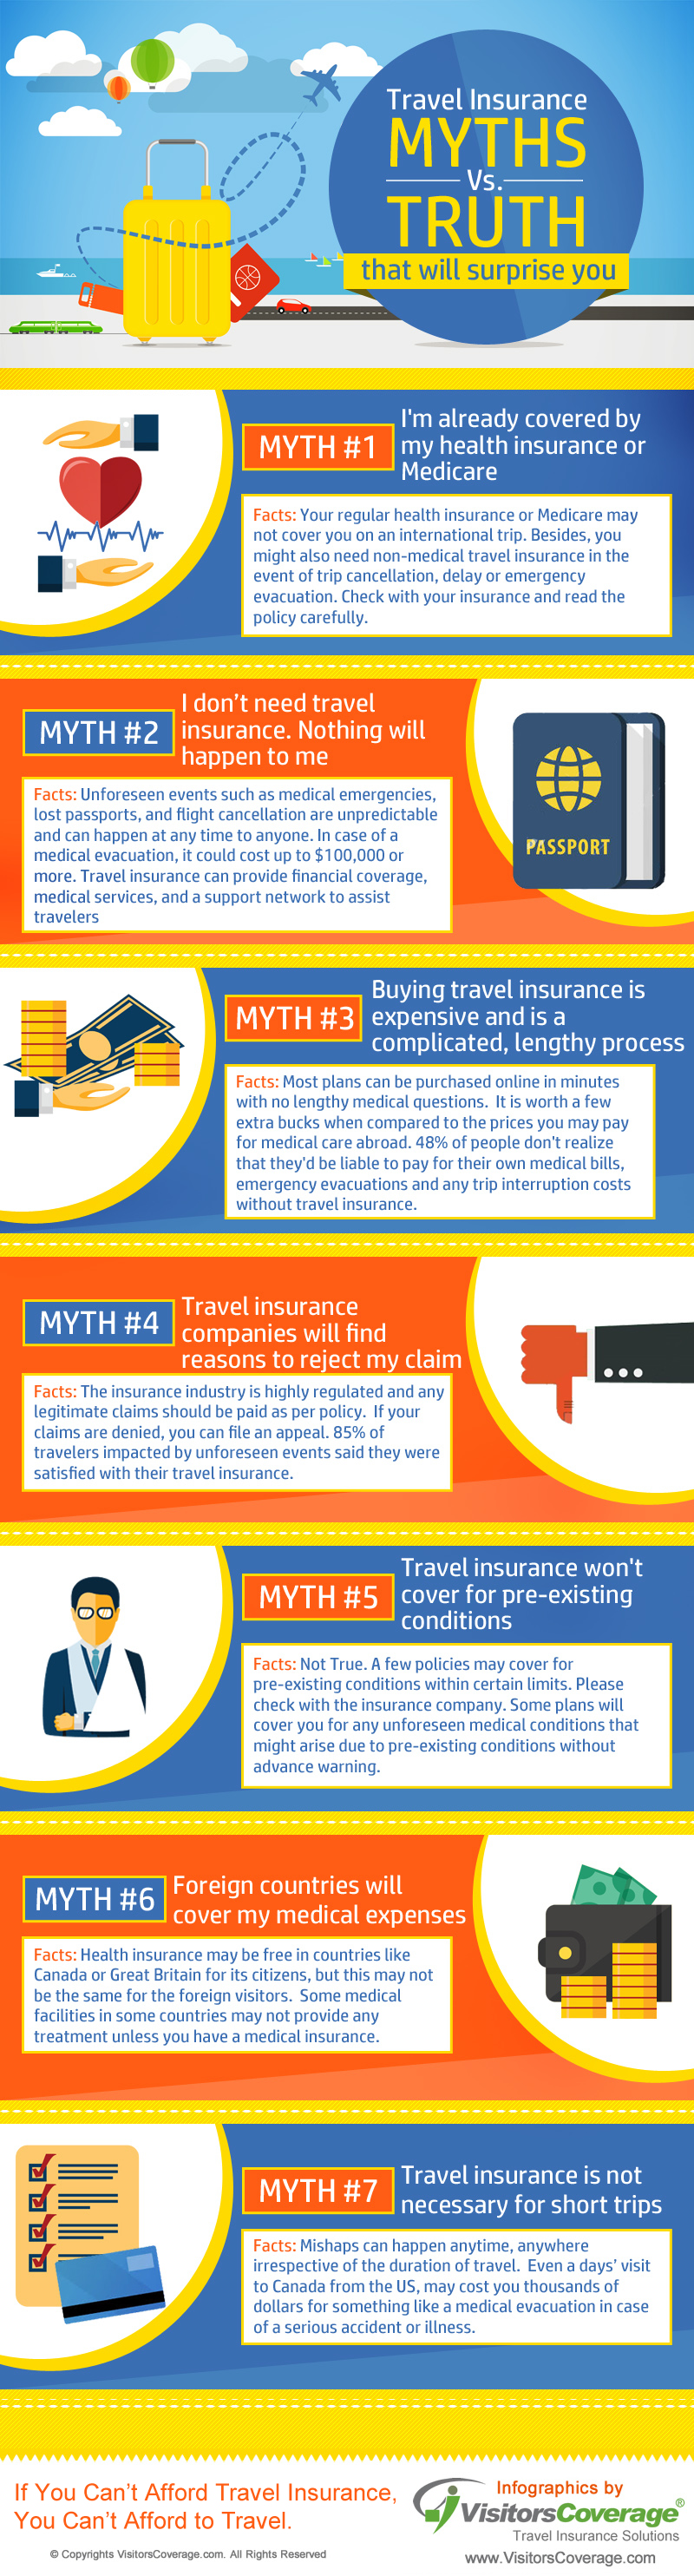 Travel Insurance Myths Vs. Truth that Will Surprise You